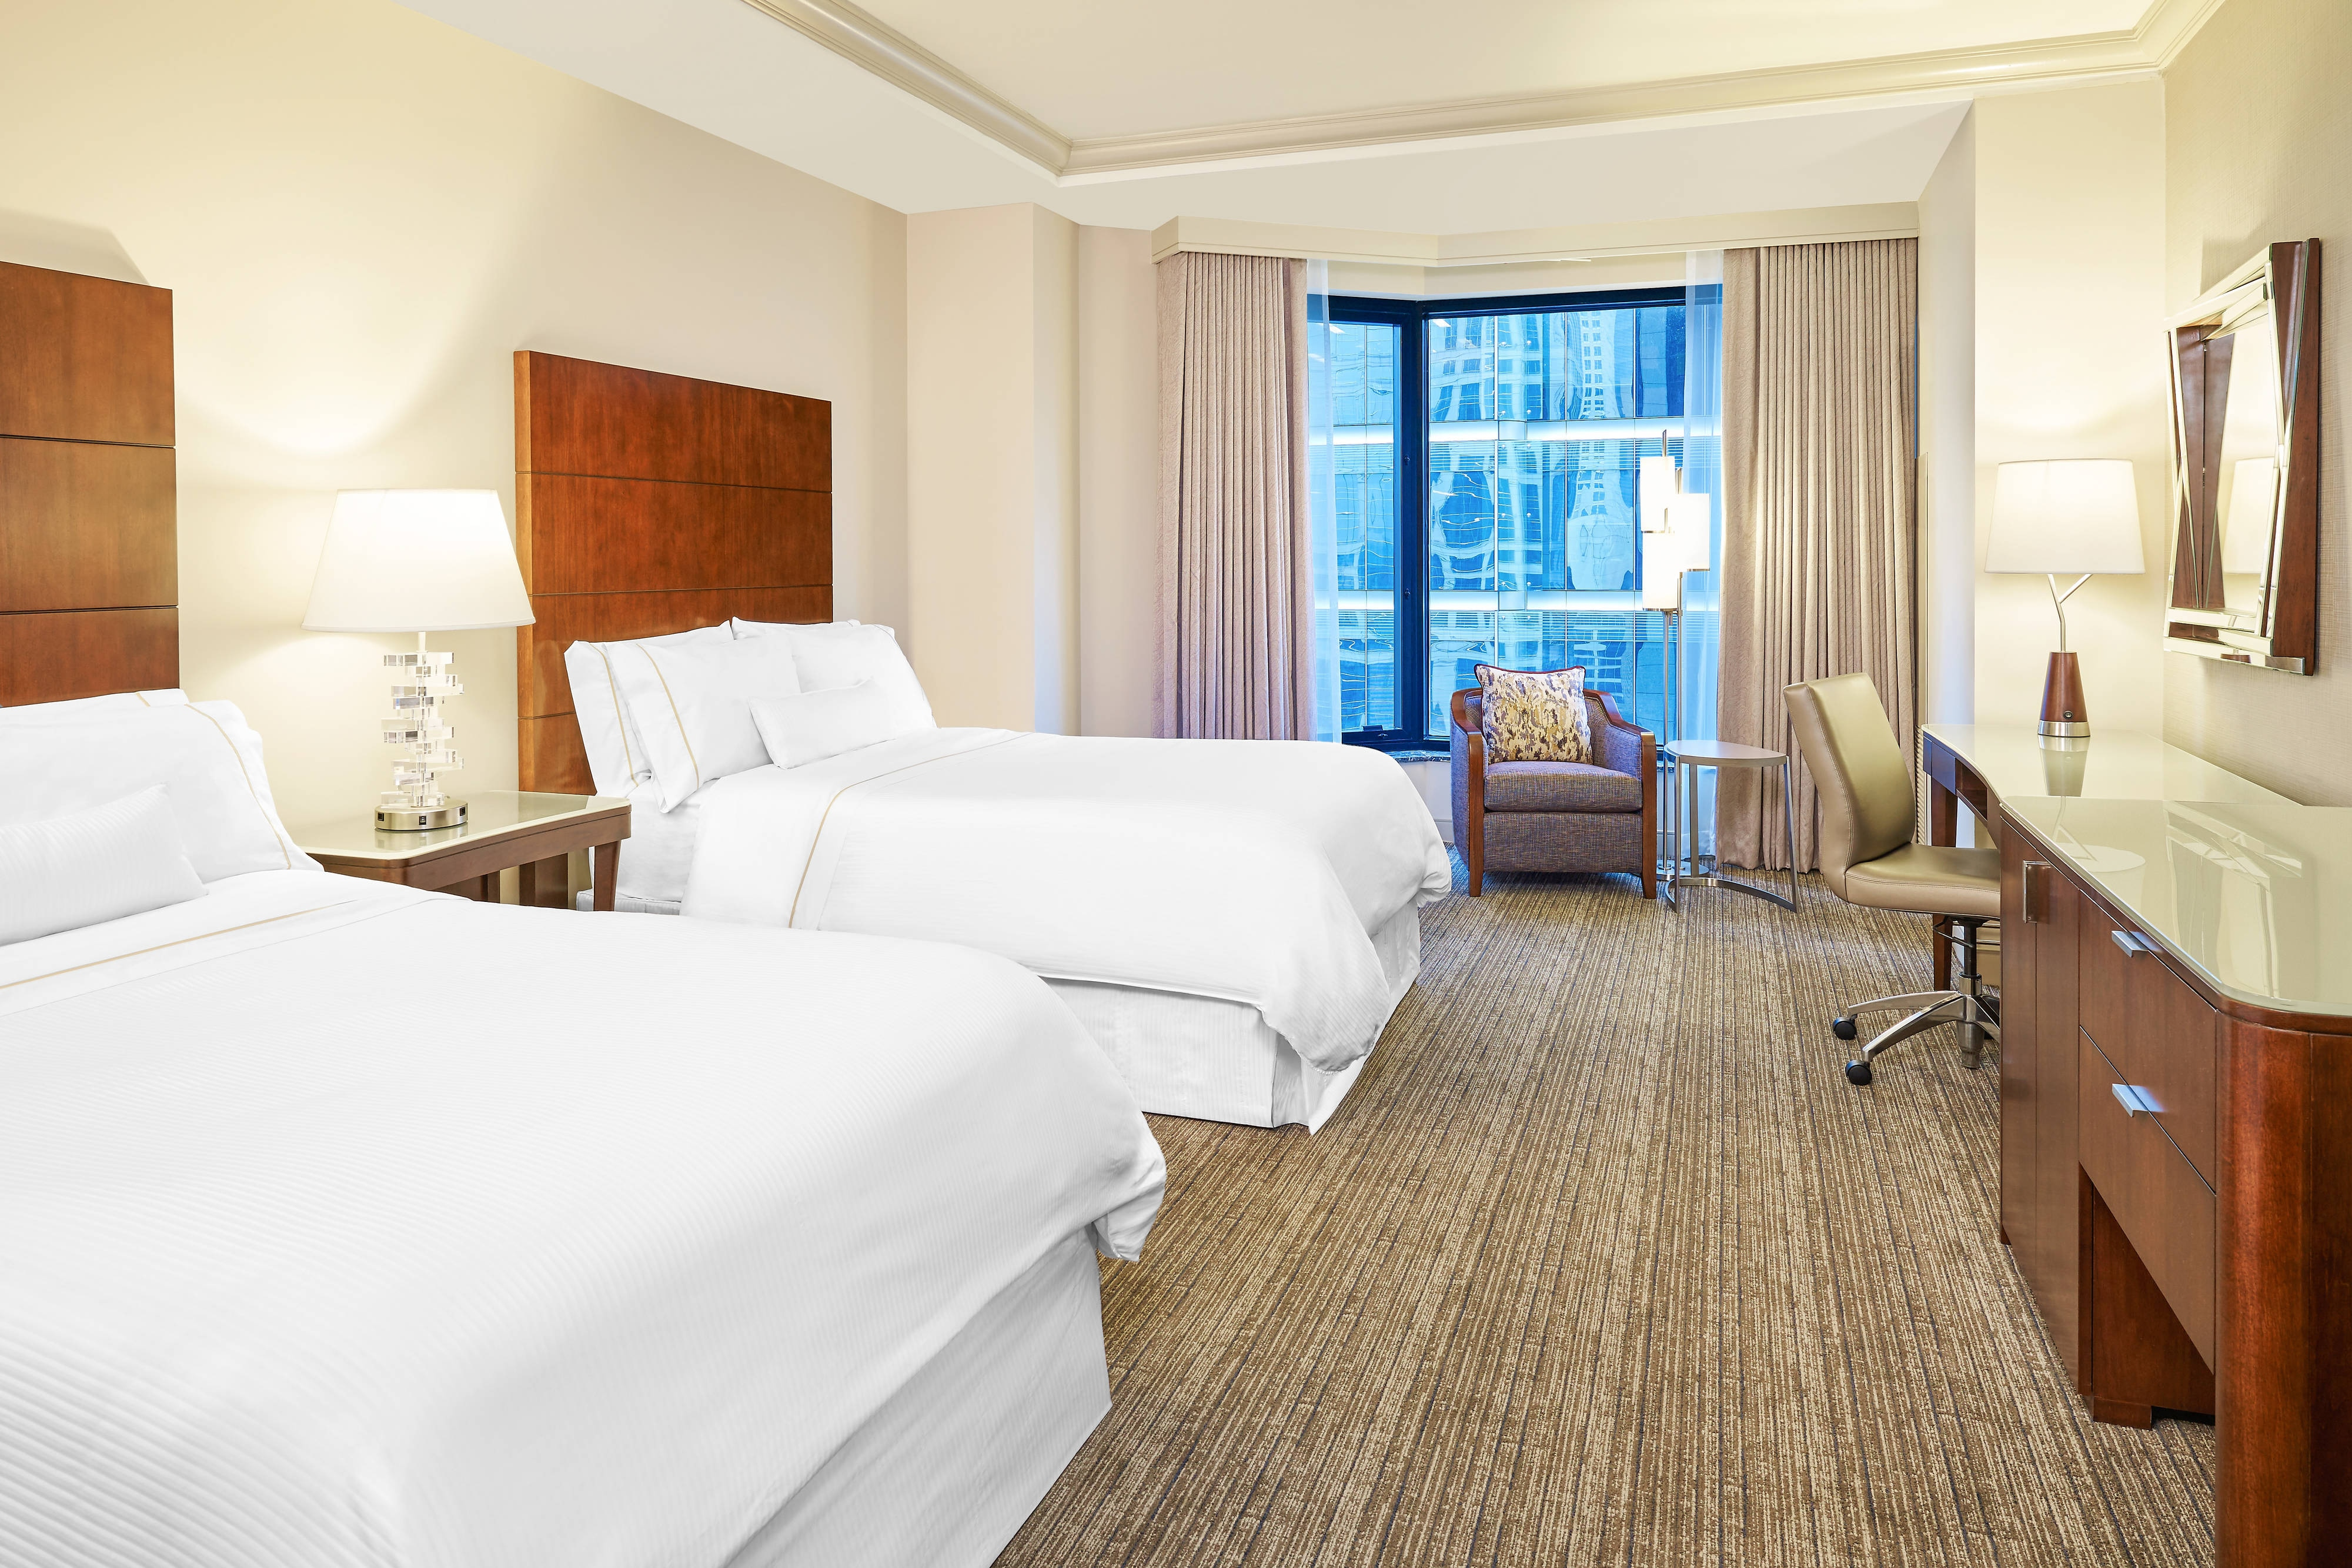 Deluxe City View Guest Room